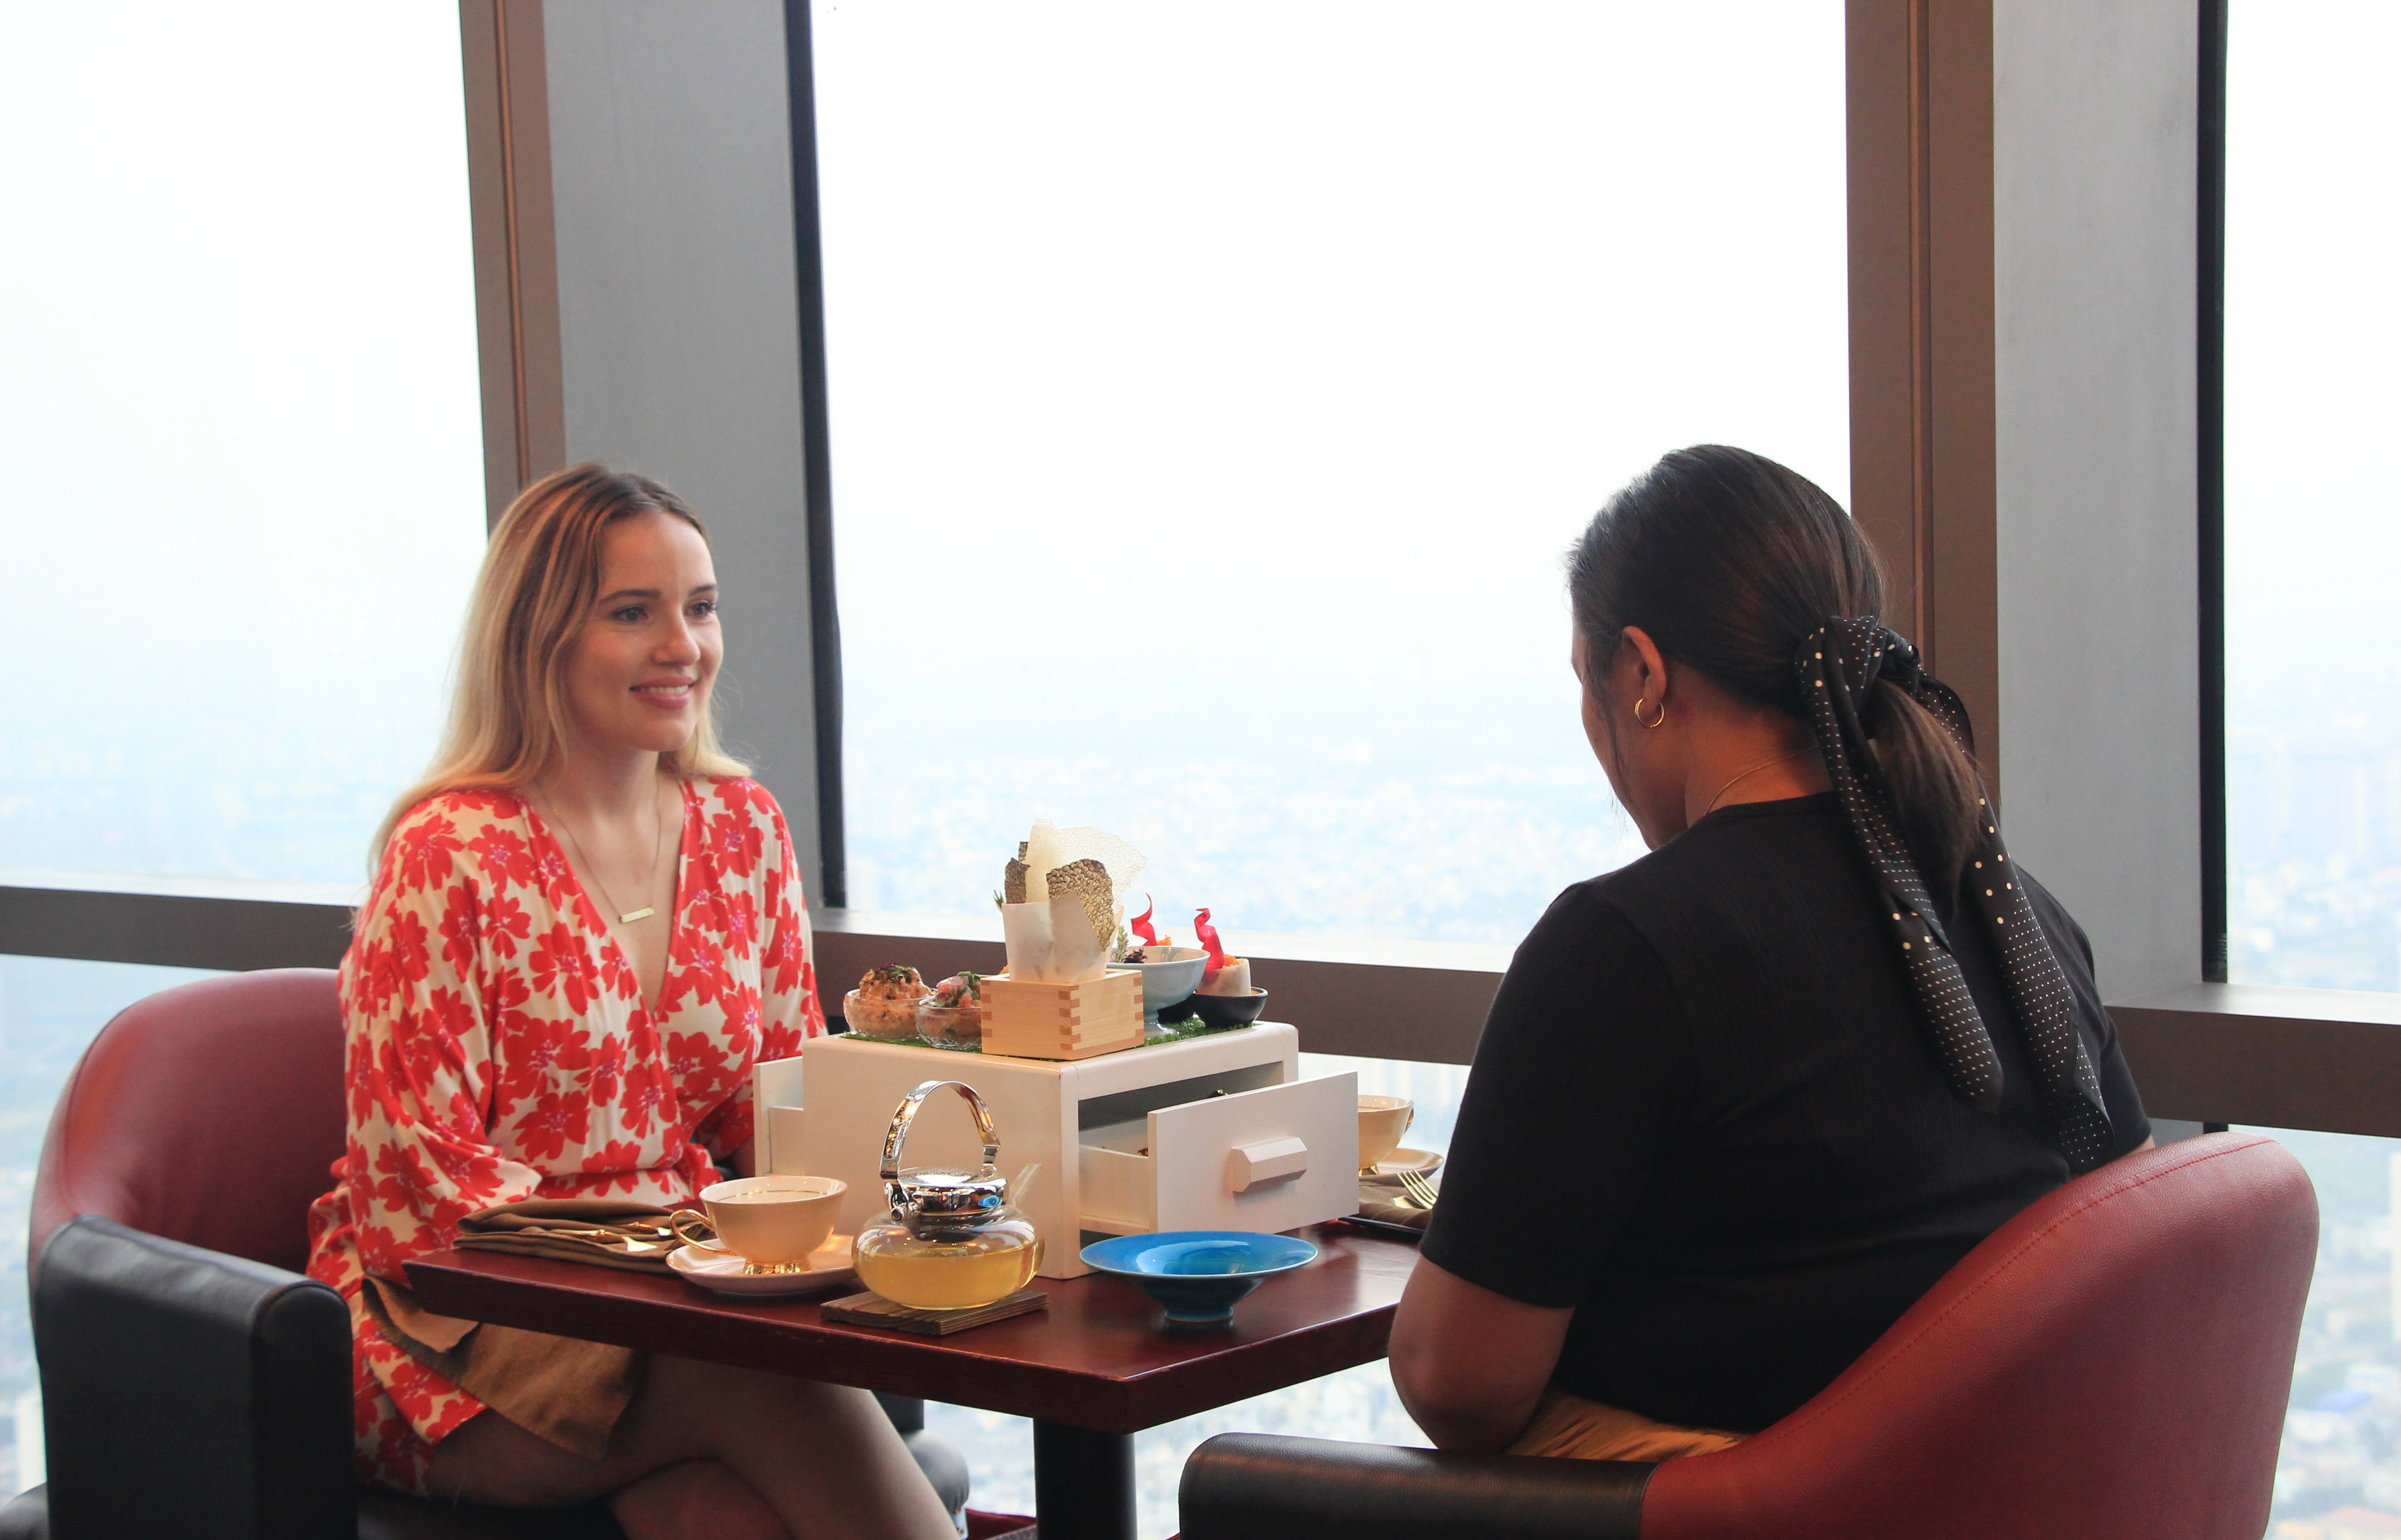 Canadian travel blogger Alyshia Turchyn talks with her friend Sam while enjoying the High Tea in the Sky afternoon tea set at Miwaku Premium Restaurant on the 80th floor at the 81-story Landmark 81 in Ho Chi Minh City's Binh Thanh District on October 22, 2020. Photo: Dong Nguyen/ Tuoi Tre News